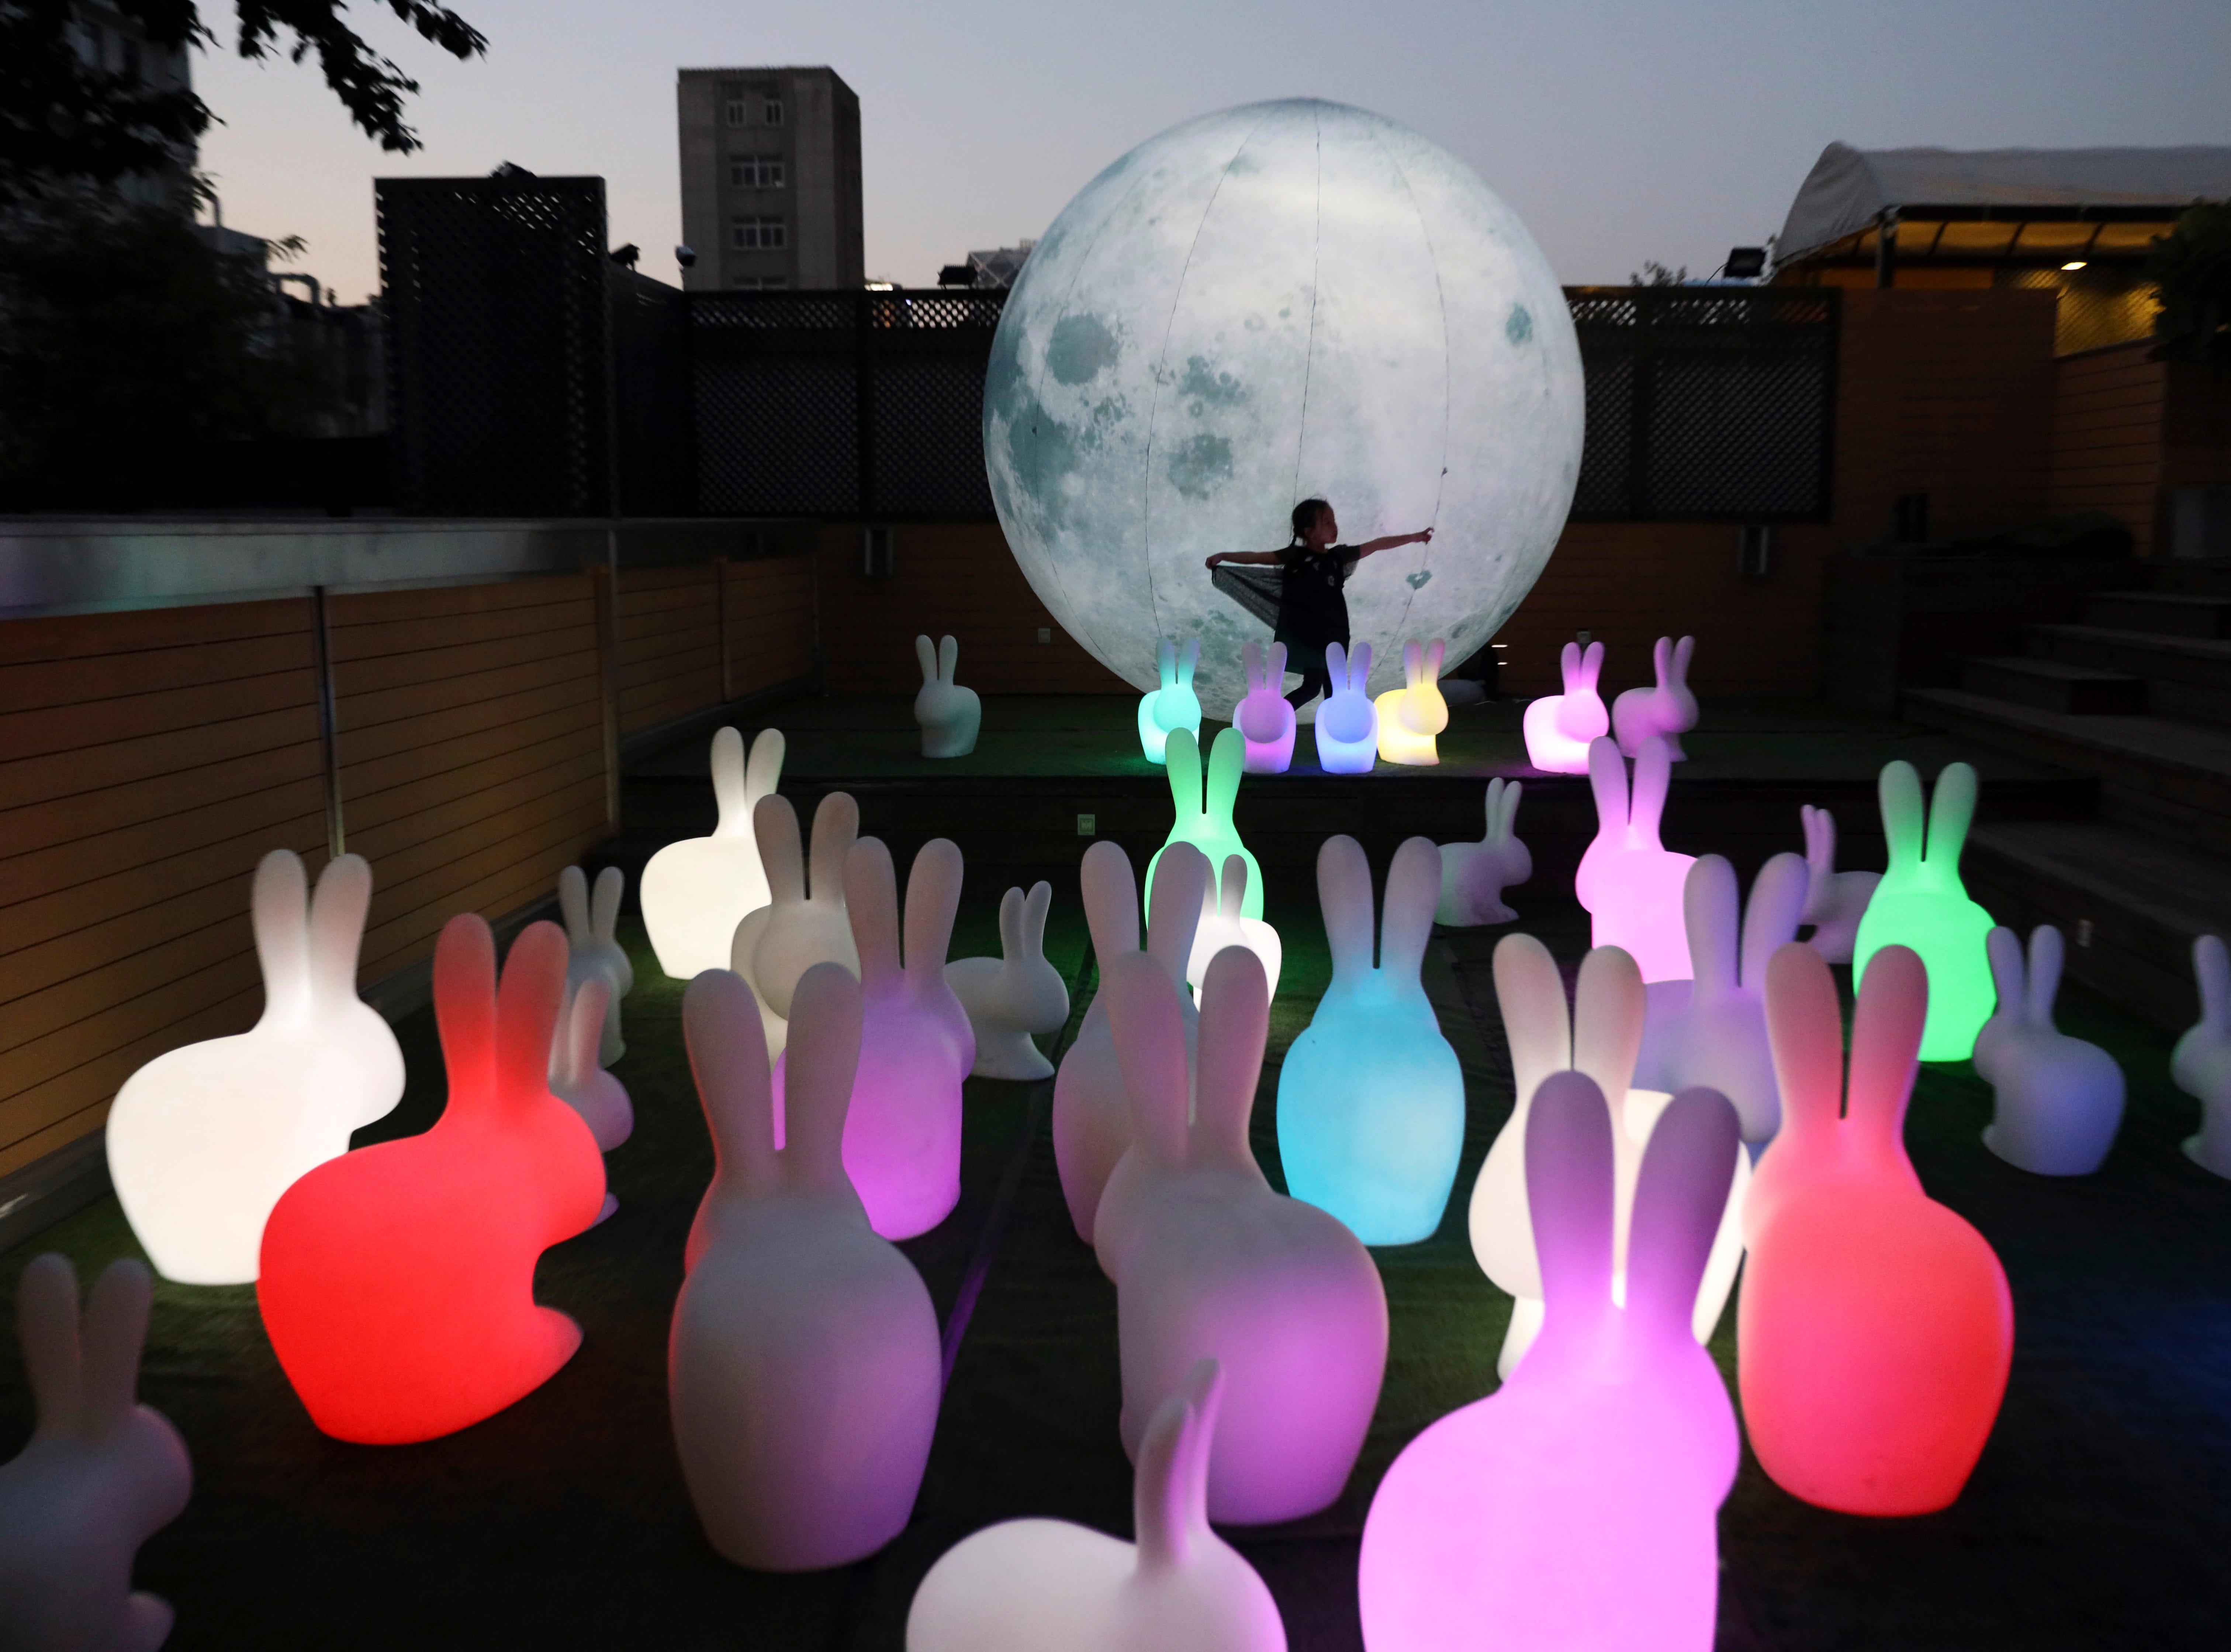 A dancing girl is silhouetted by a balloon moon installation at an art district in Beijing, China, Tuesday, Oct. 2, 2018. The installation art is part of a parent and child event coinciding with the Chinese National Day.